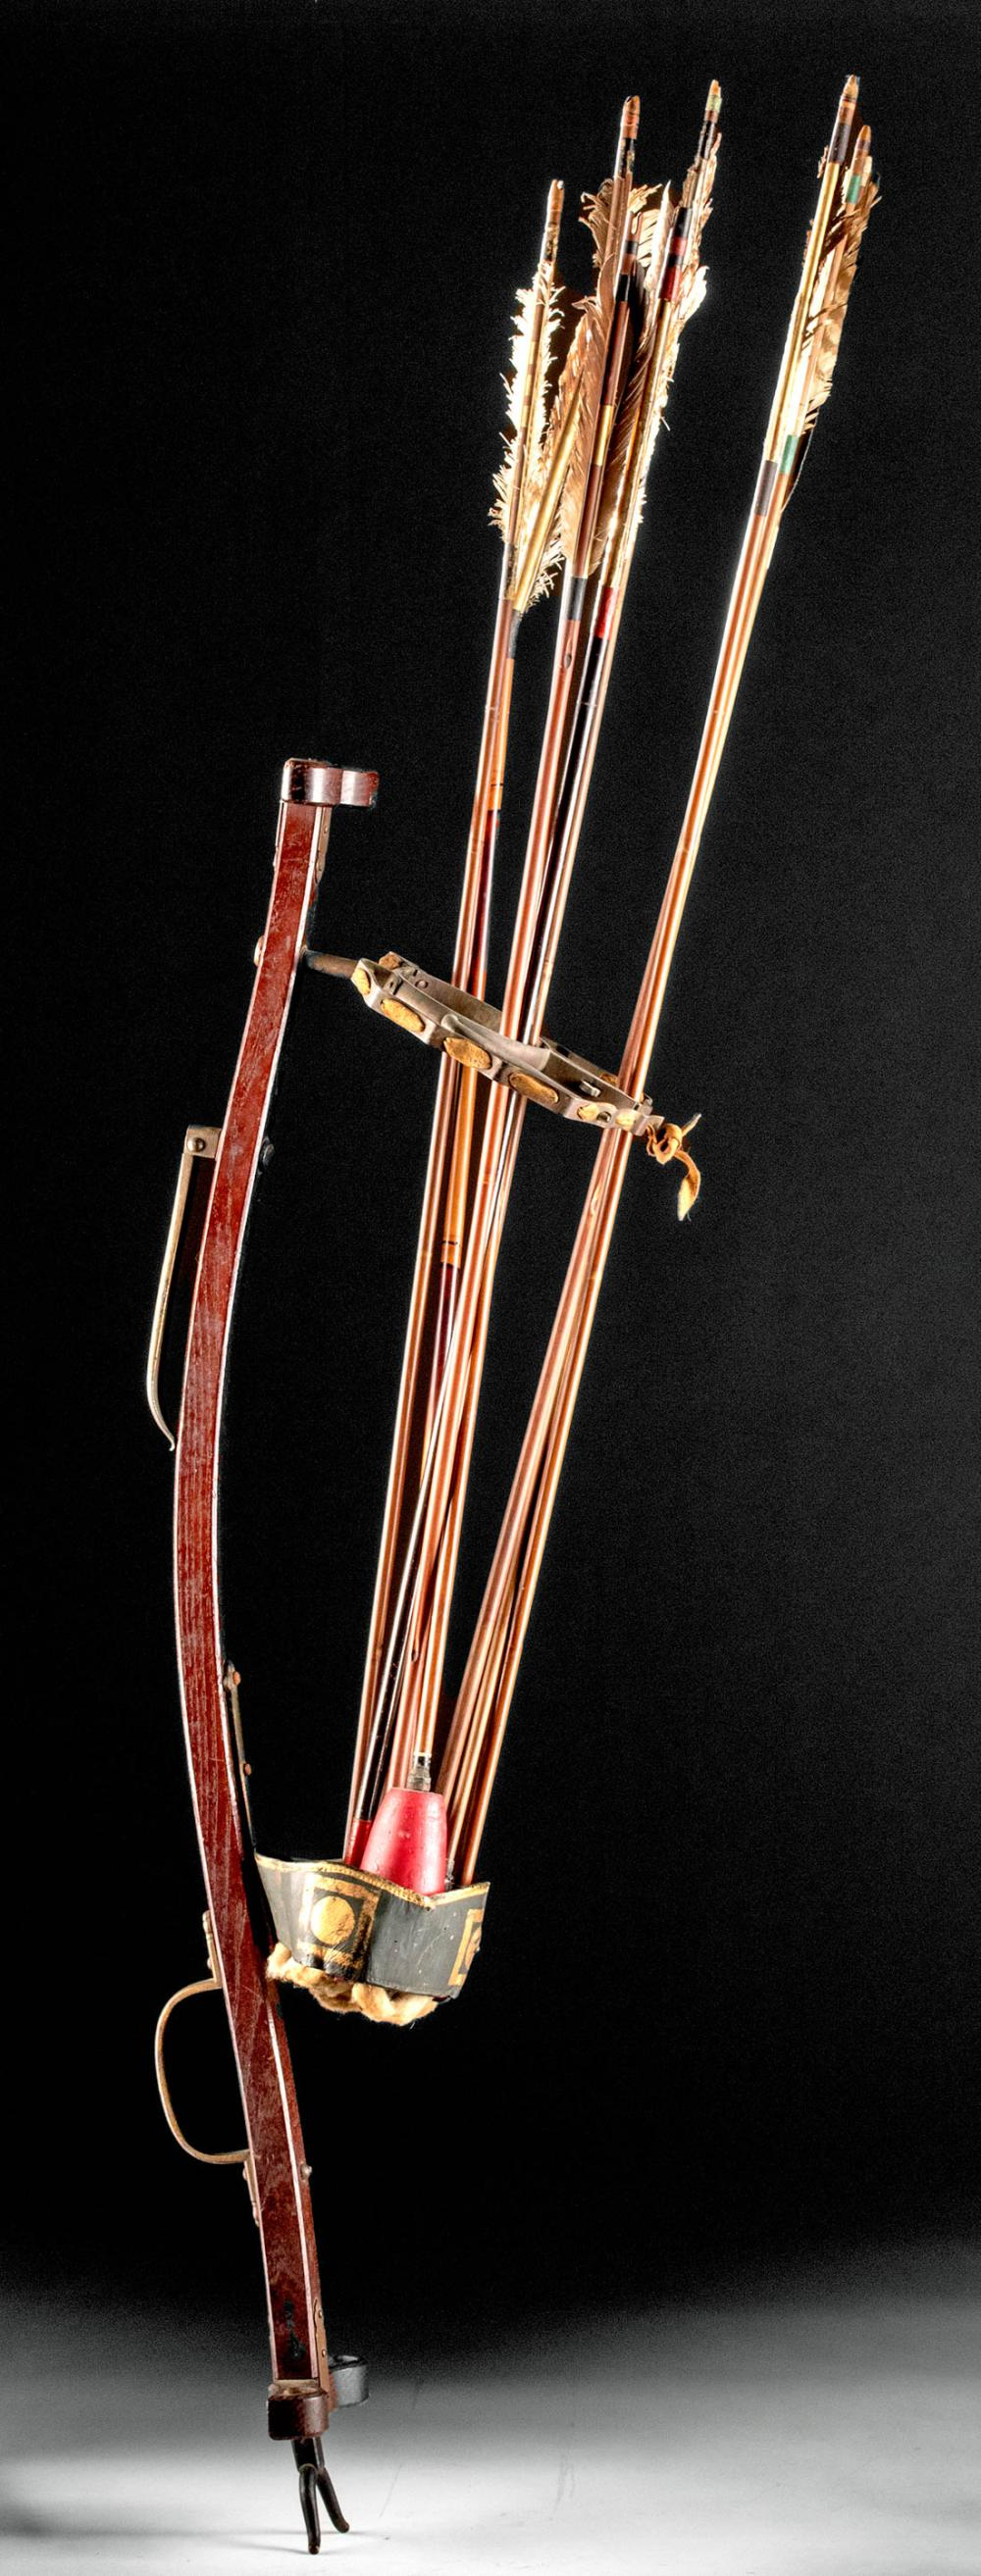 Japanese Edo Wooden Archery Stand W Arrows Archery Edo Arrow It avoids damaging the arrows and reduces with this support of arrows you improve your accuracy of shooting. pinterest